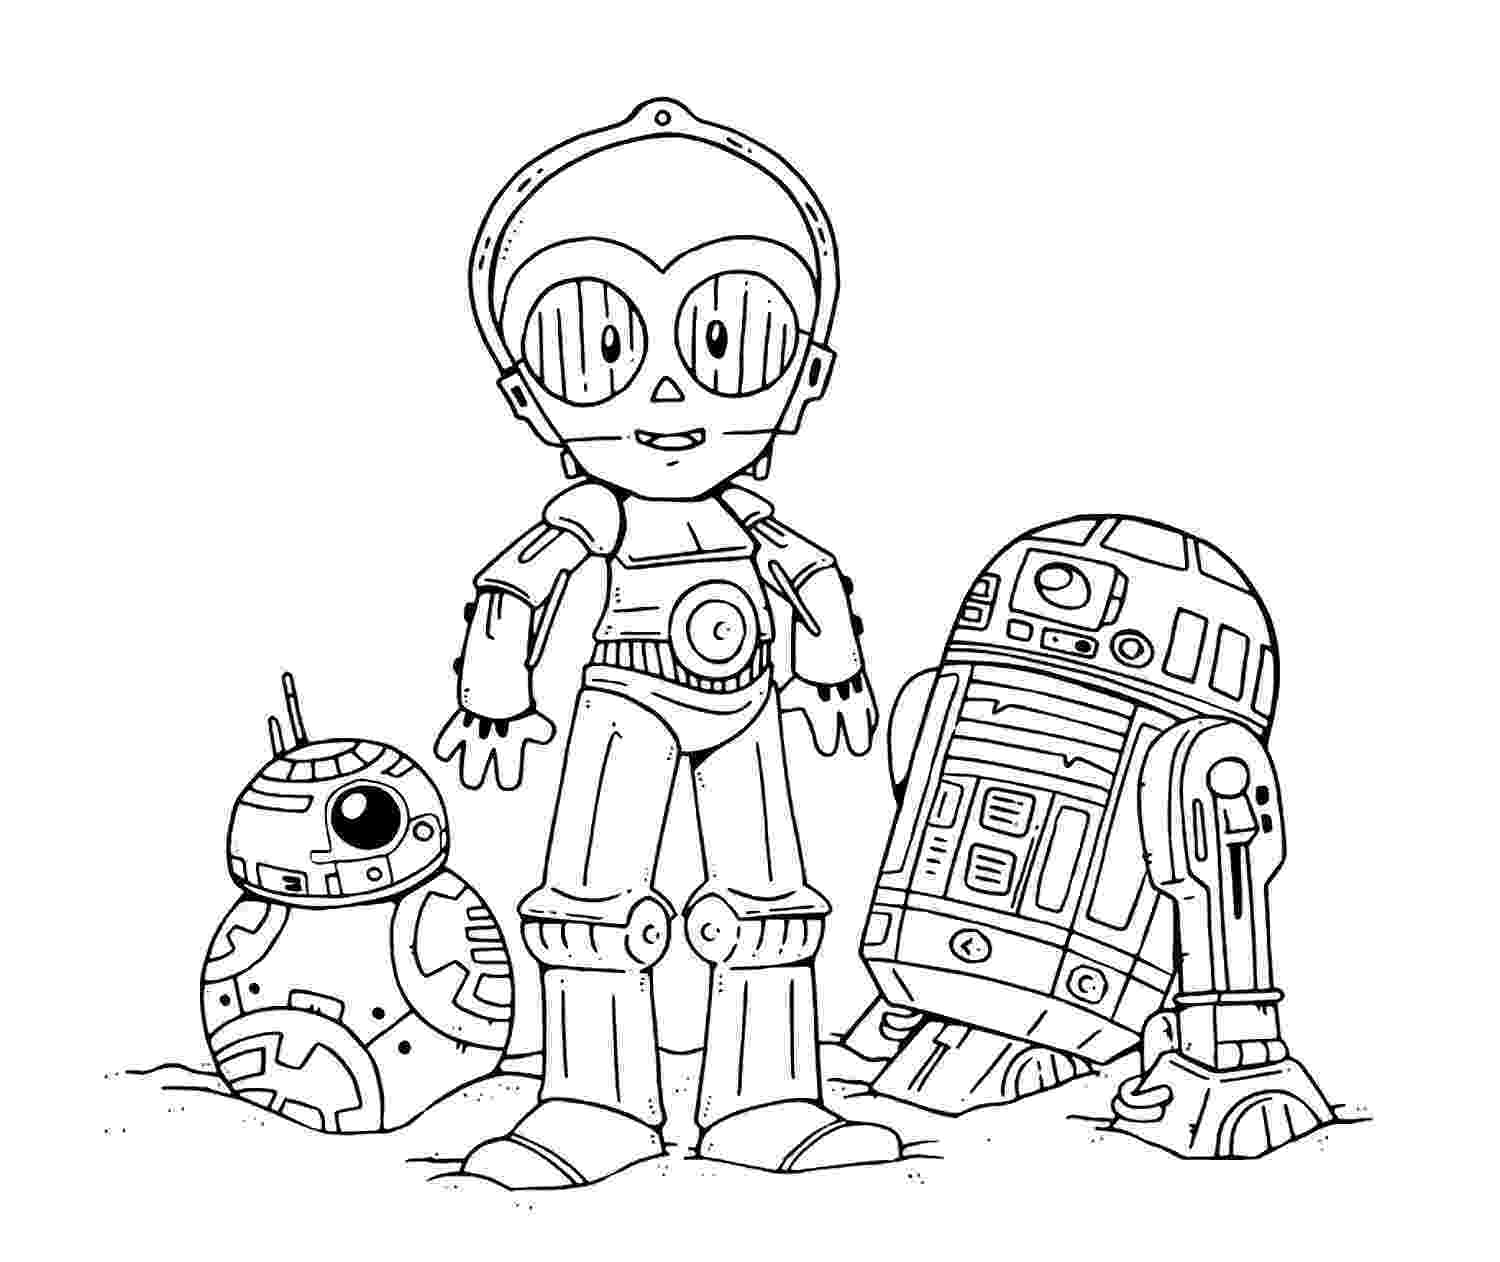 star wars colouring printables lego star wars coloring pages best coloring pages for kids printables wars star colouring